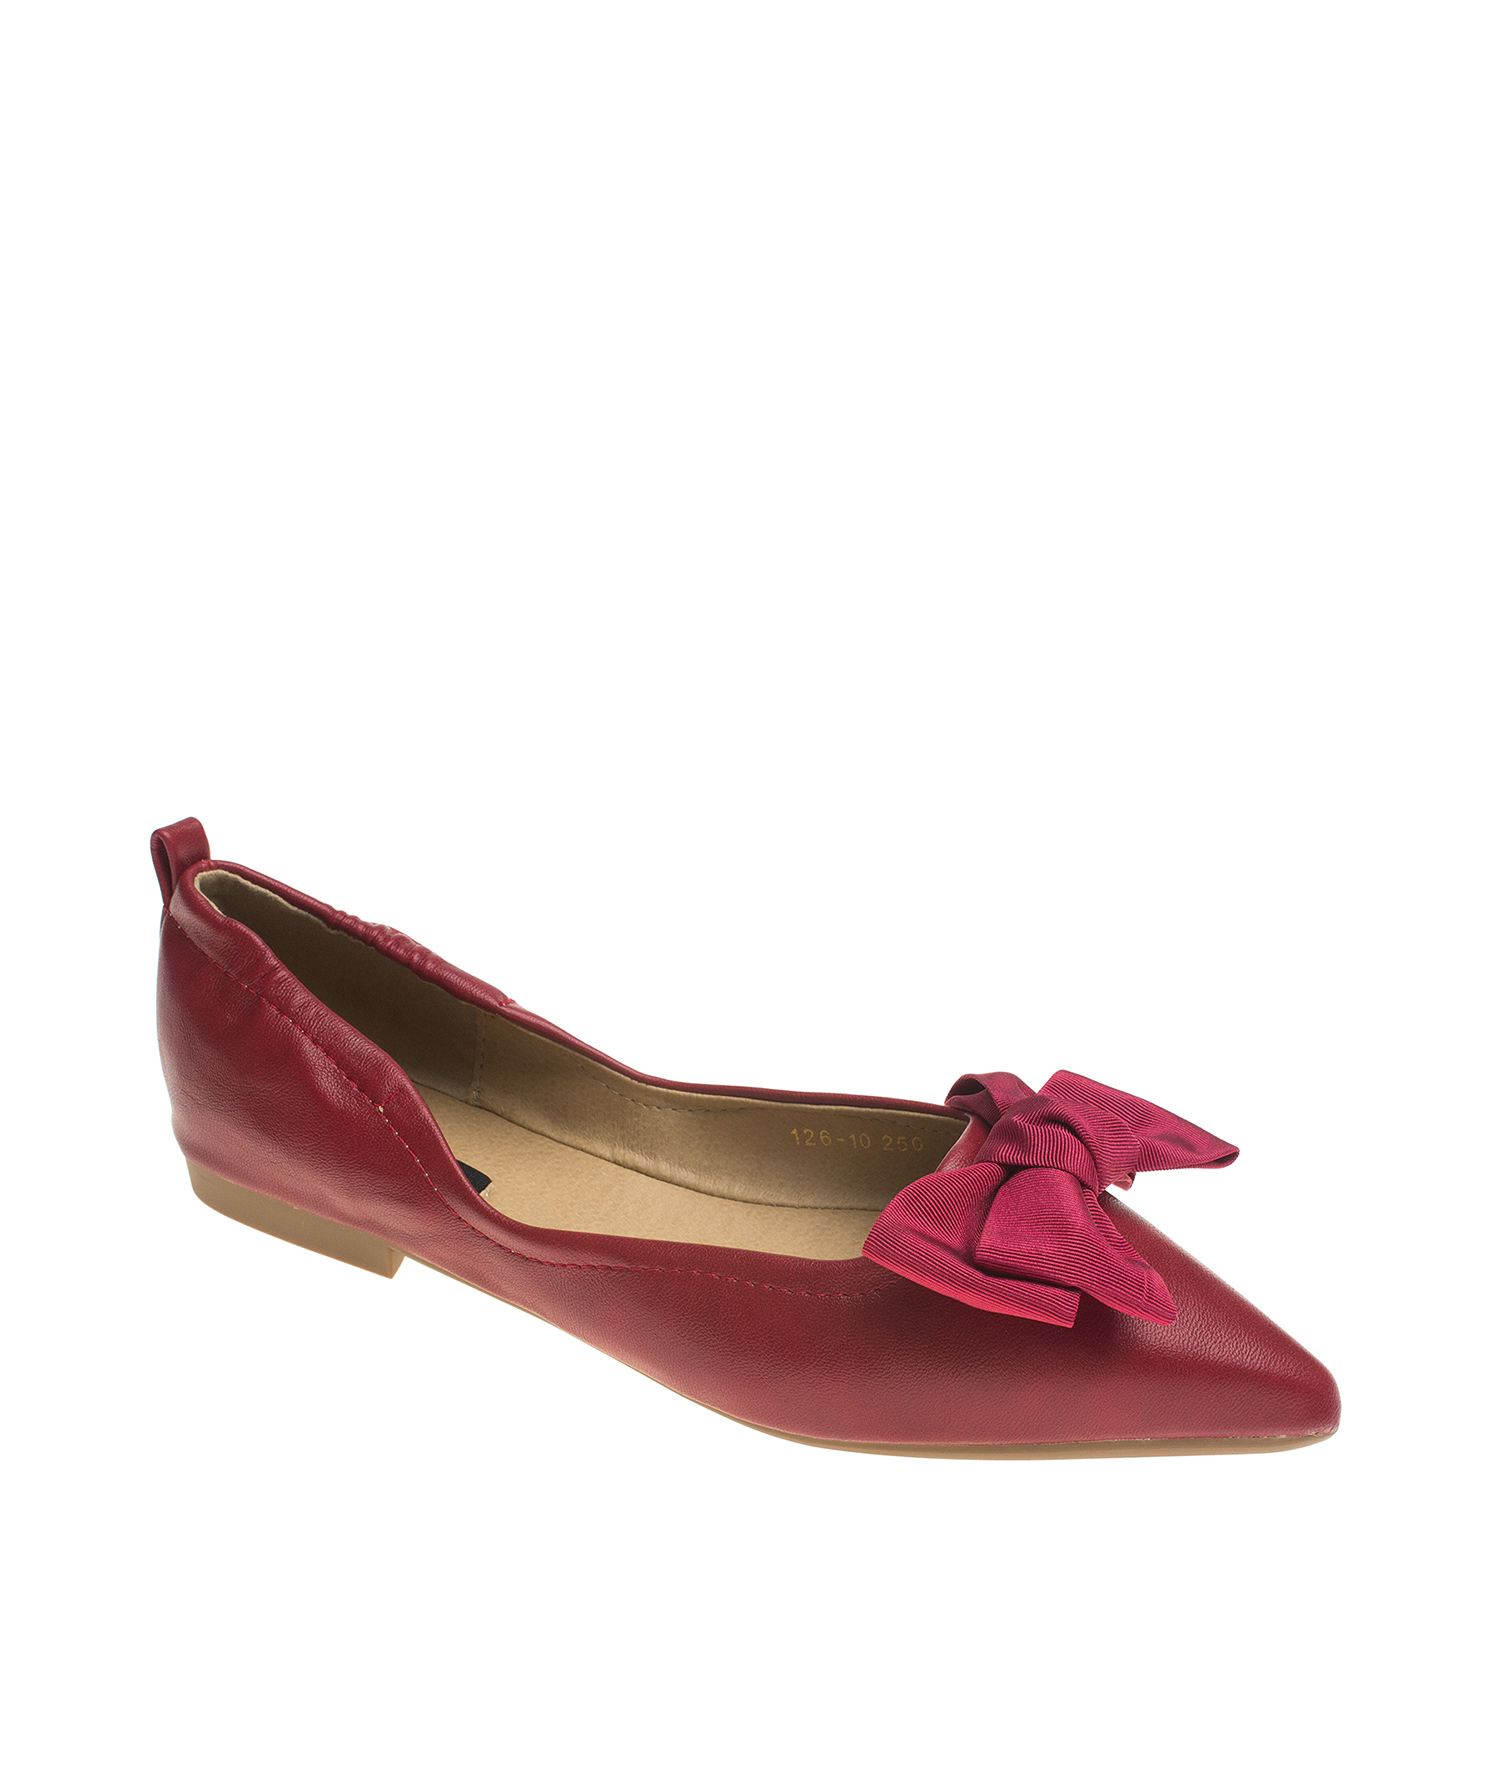 869da5d60ee Pointy Toe Comfortable Ballet Flats with Bow - annakastleshoes.com